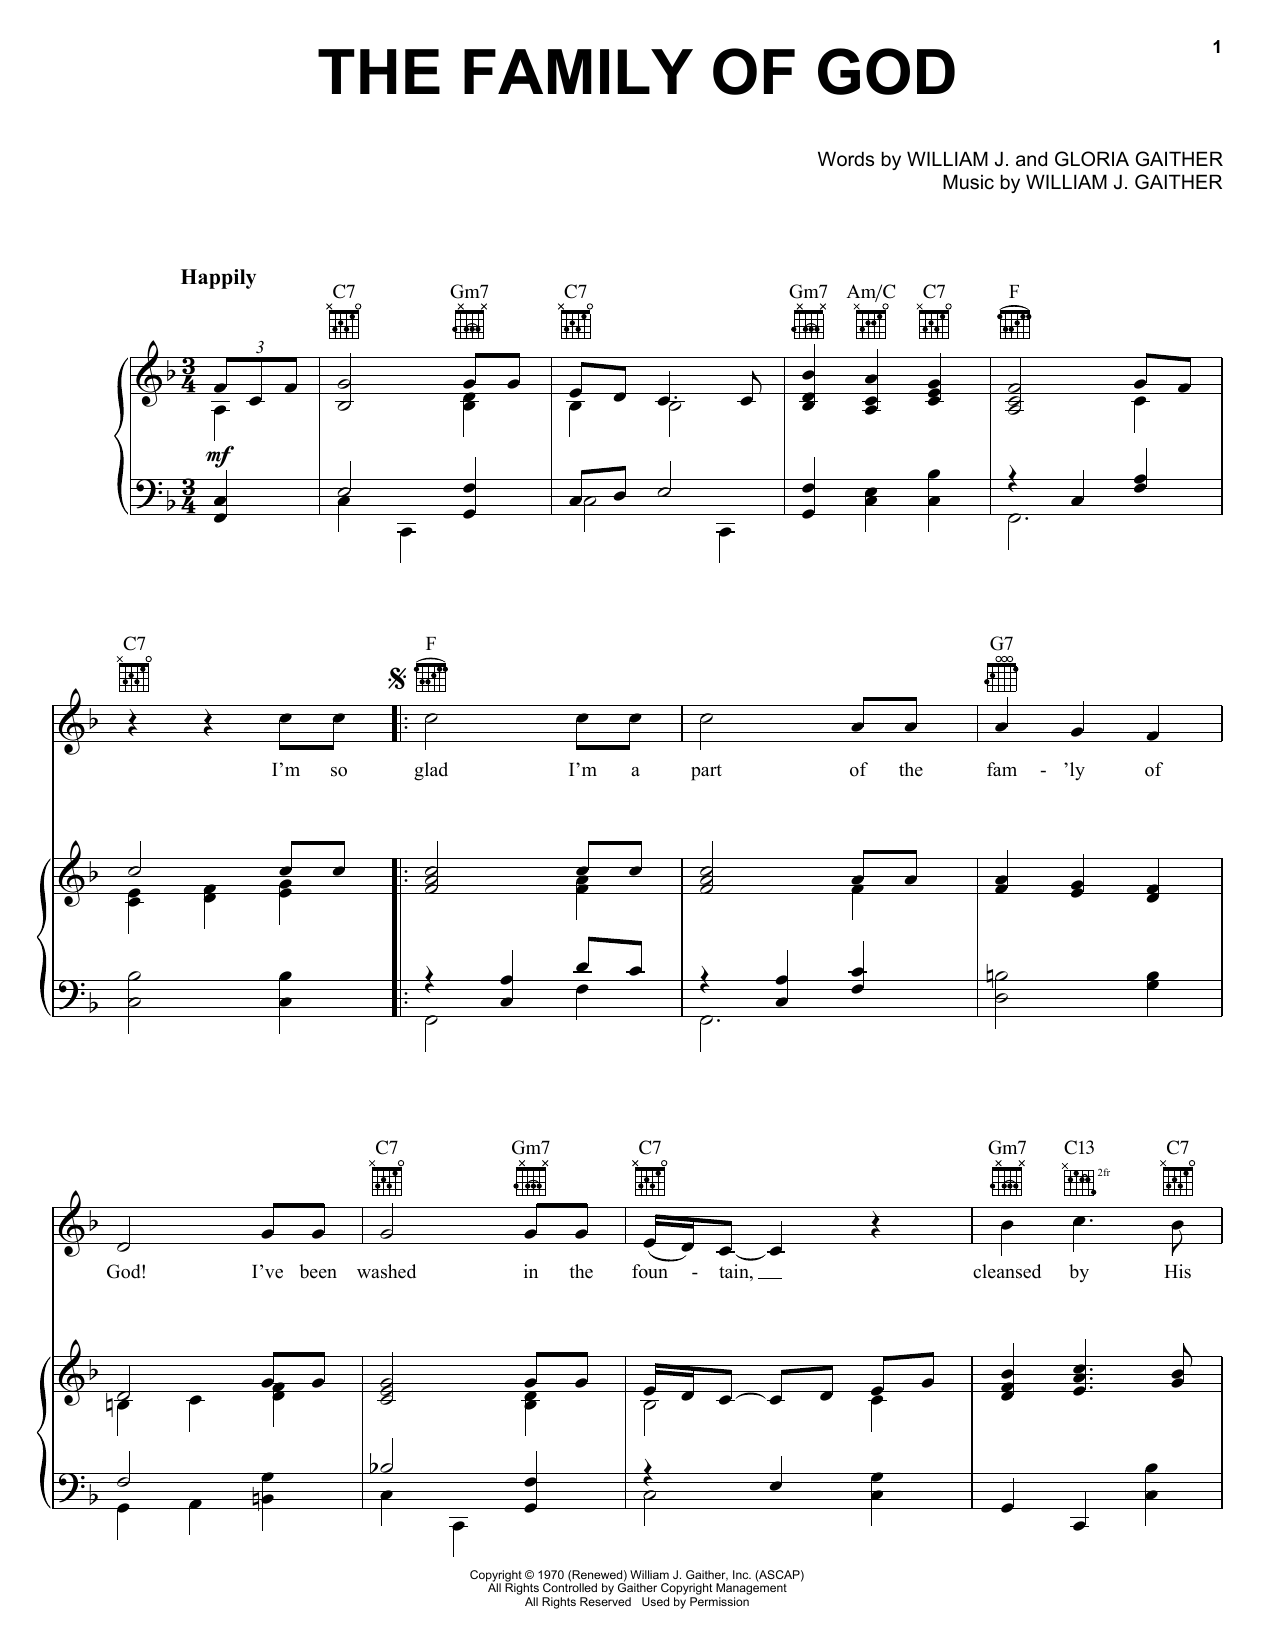 Bill Gloria Gaither The Family Of God Sheet Music Notes Chords